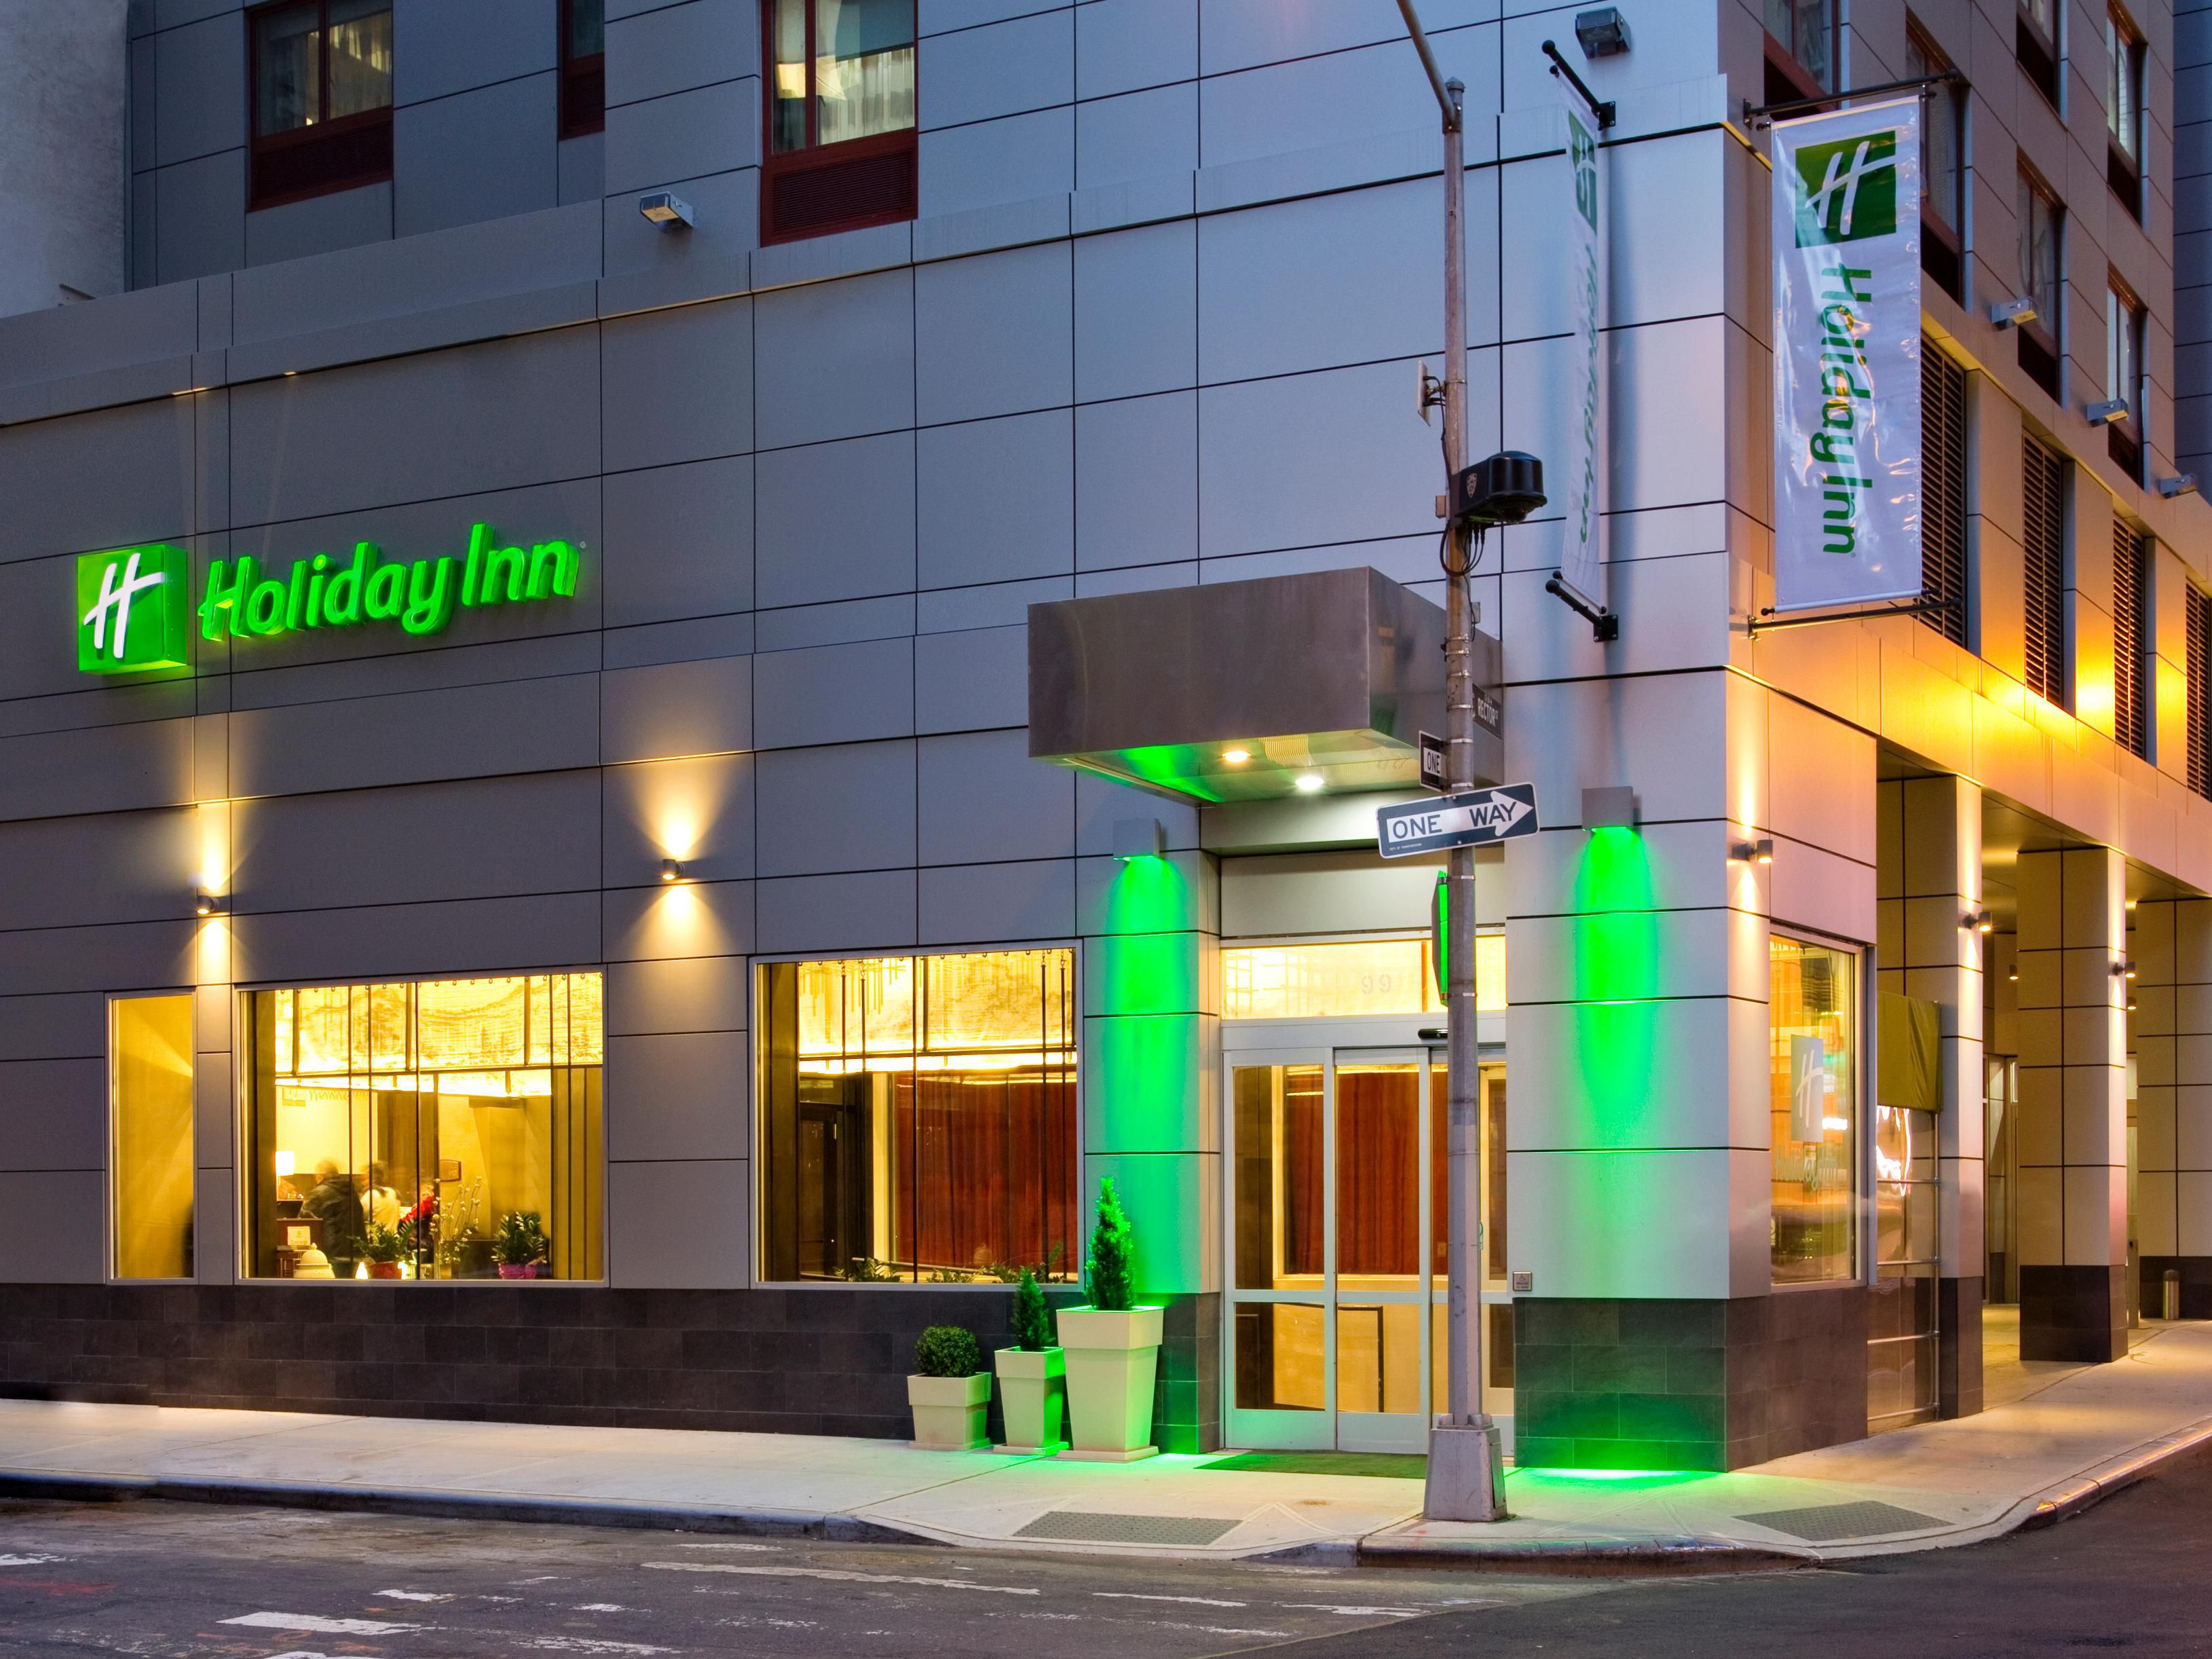 Albergo York Hotels In Lower Manhattan Nyc Holiday Inn Manhattan Financial